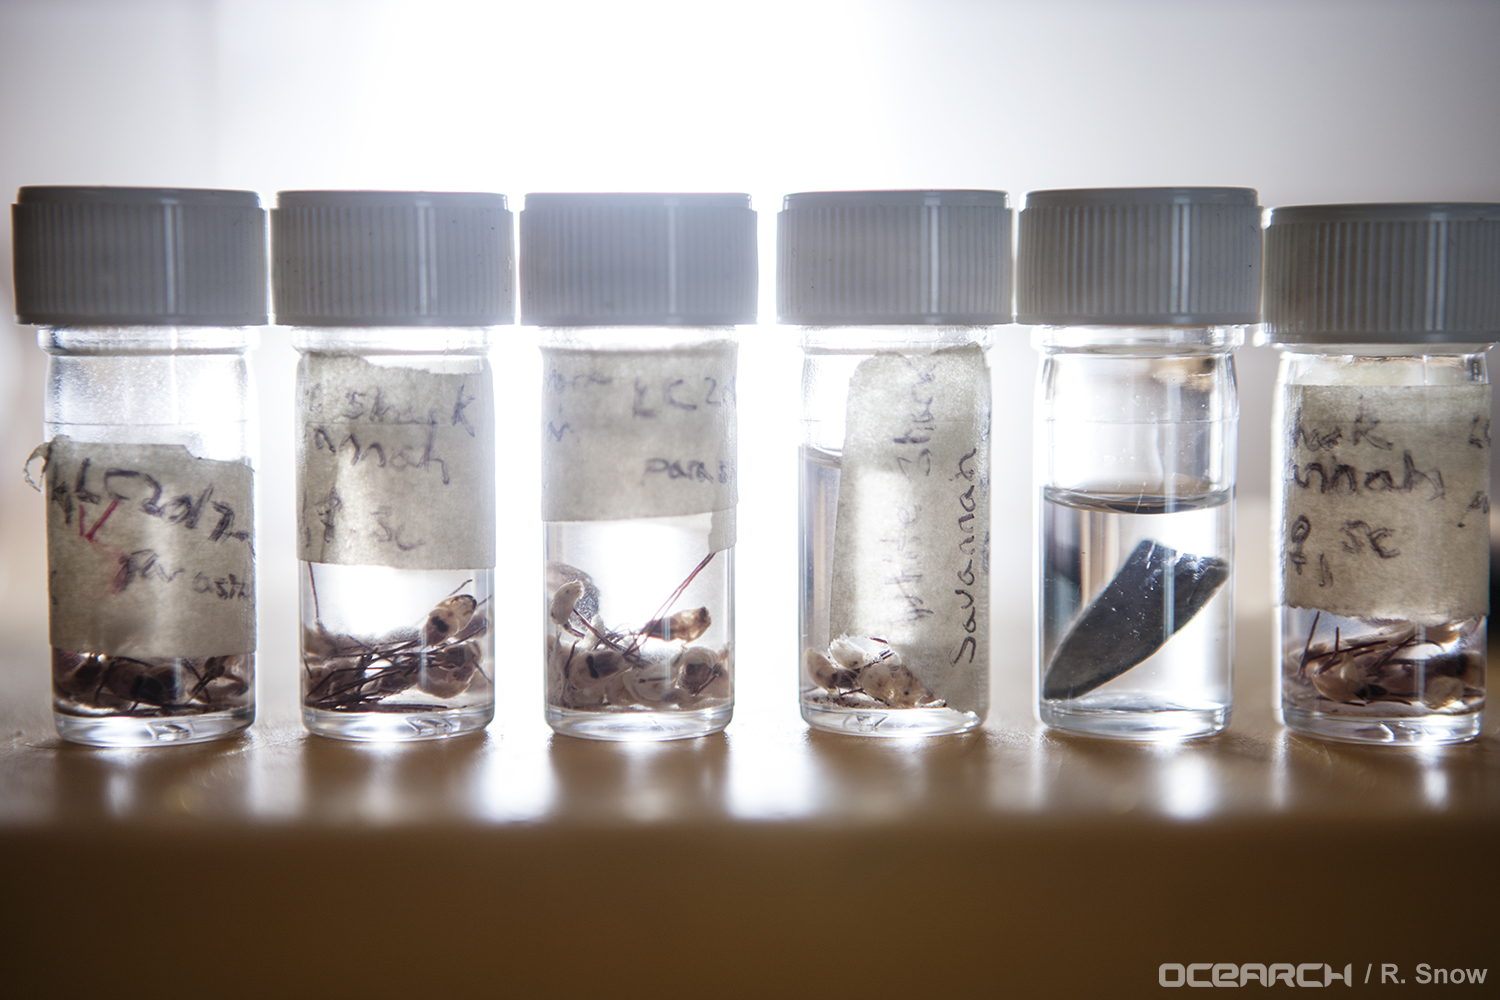 These parasitic copepods were collected from the expedition's white sharks for study by an Auburn University researcher. (Photo: OCEARCH/R. Snow)